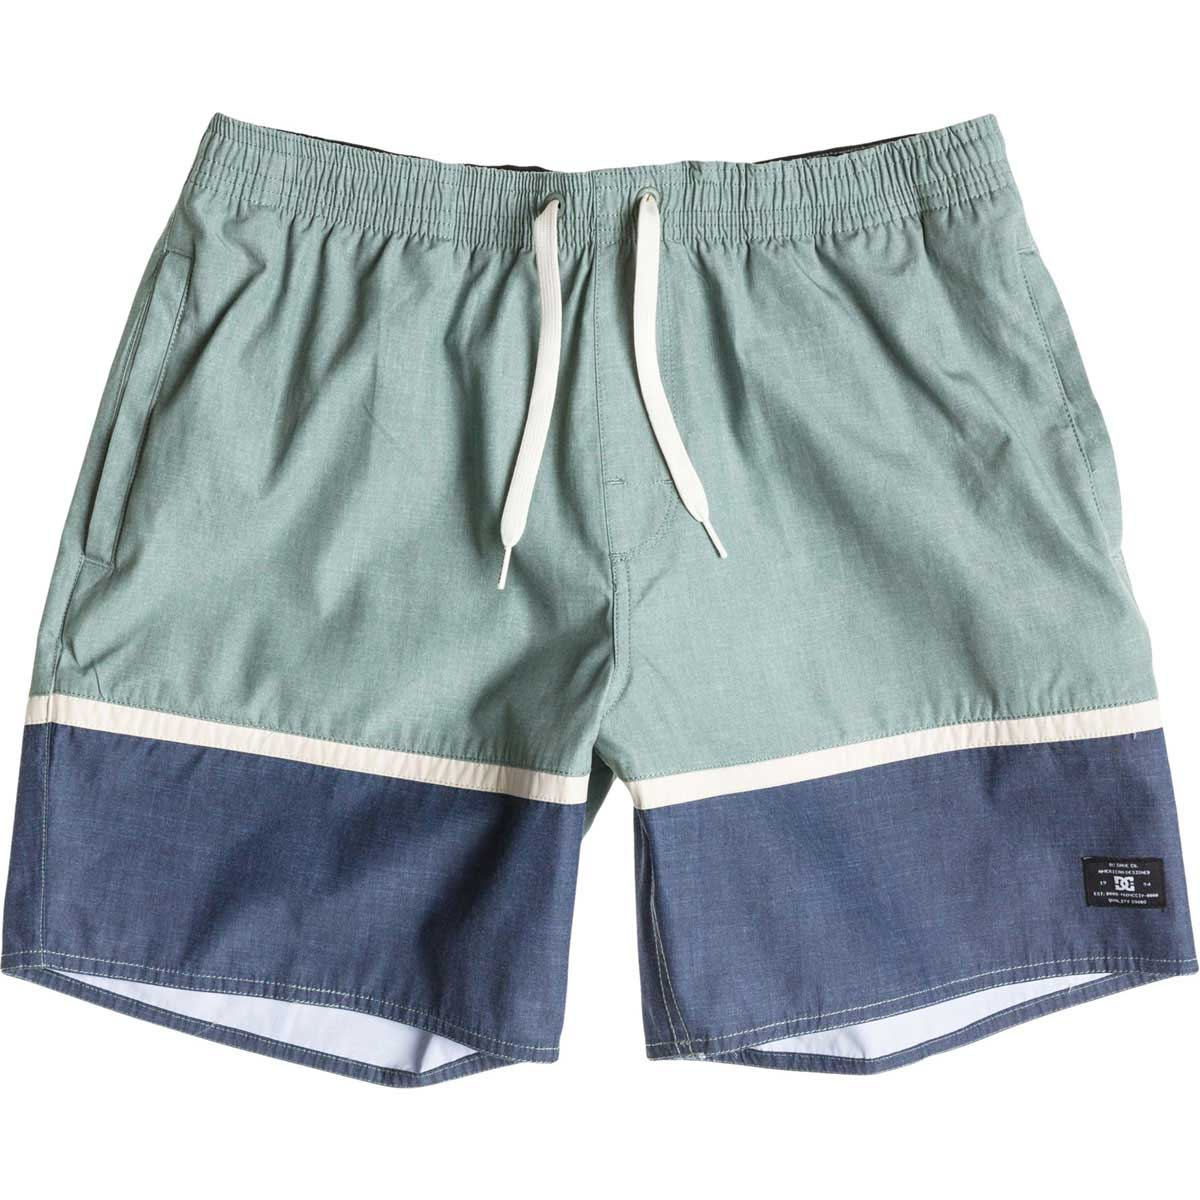 DC Turtle Bay Men's Boardshort Shorts-ADYJV03003